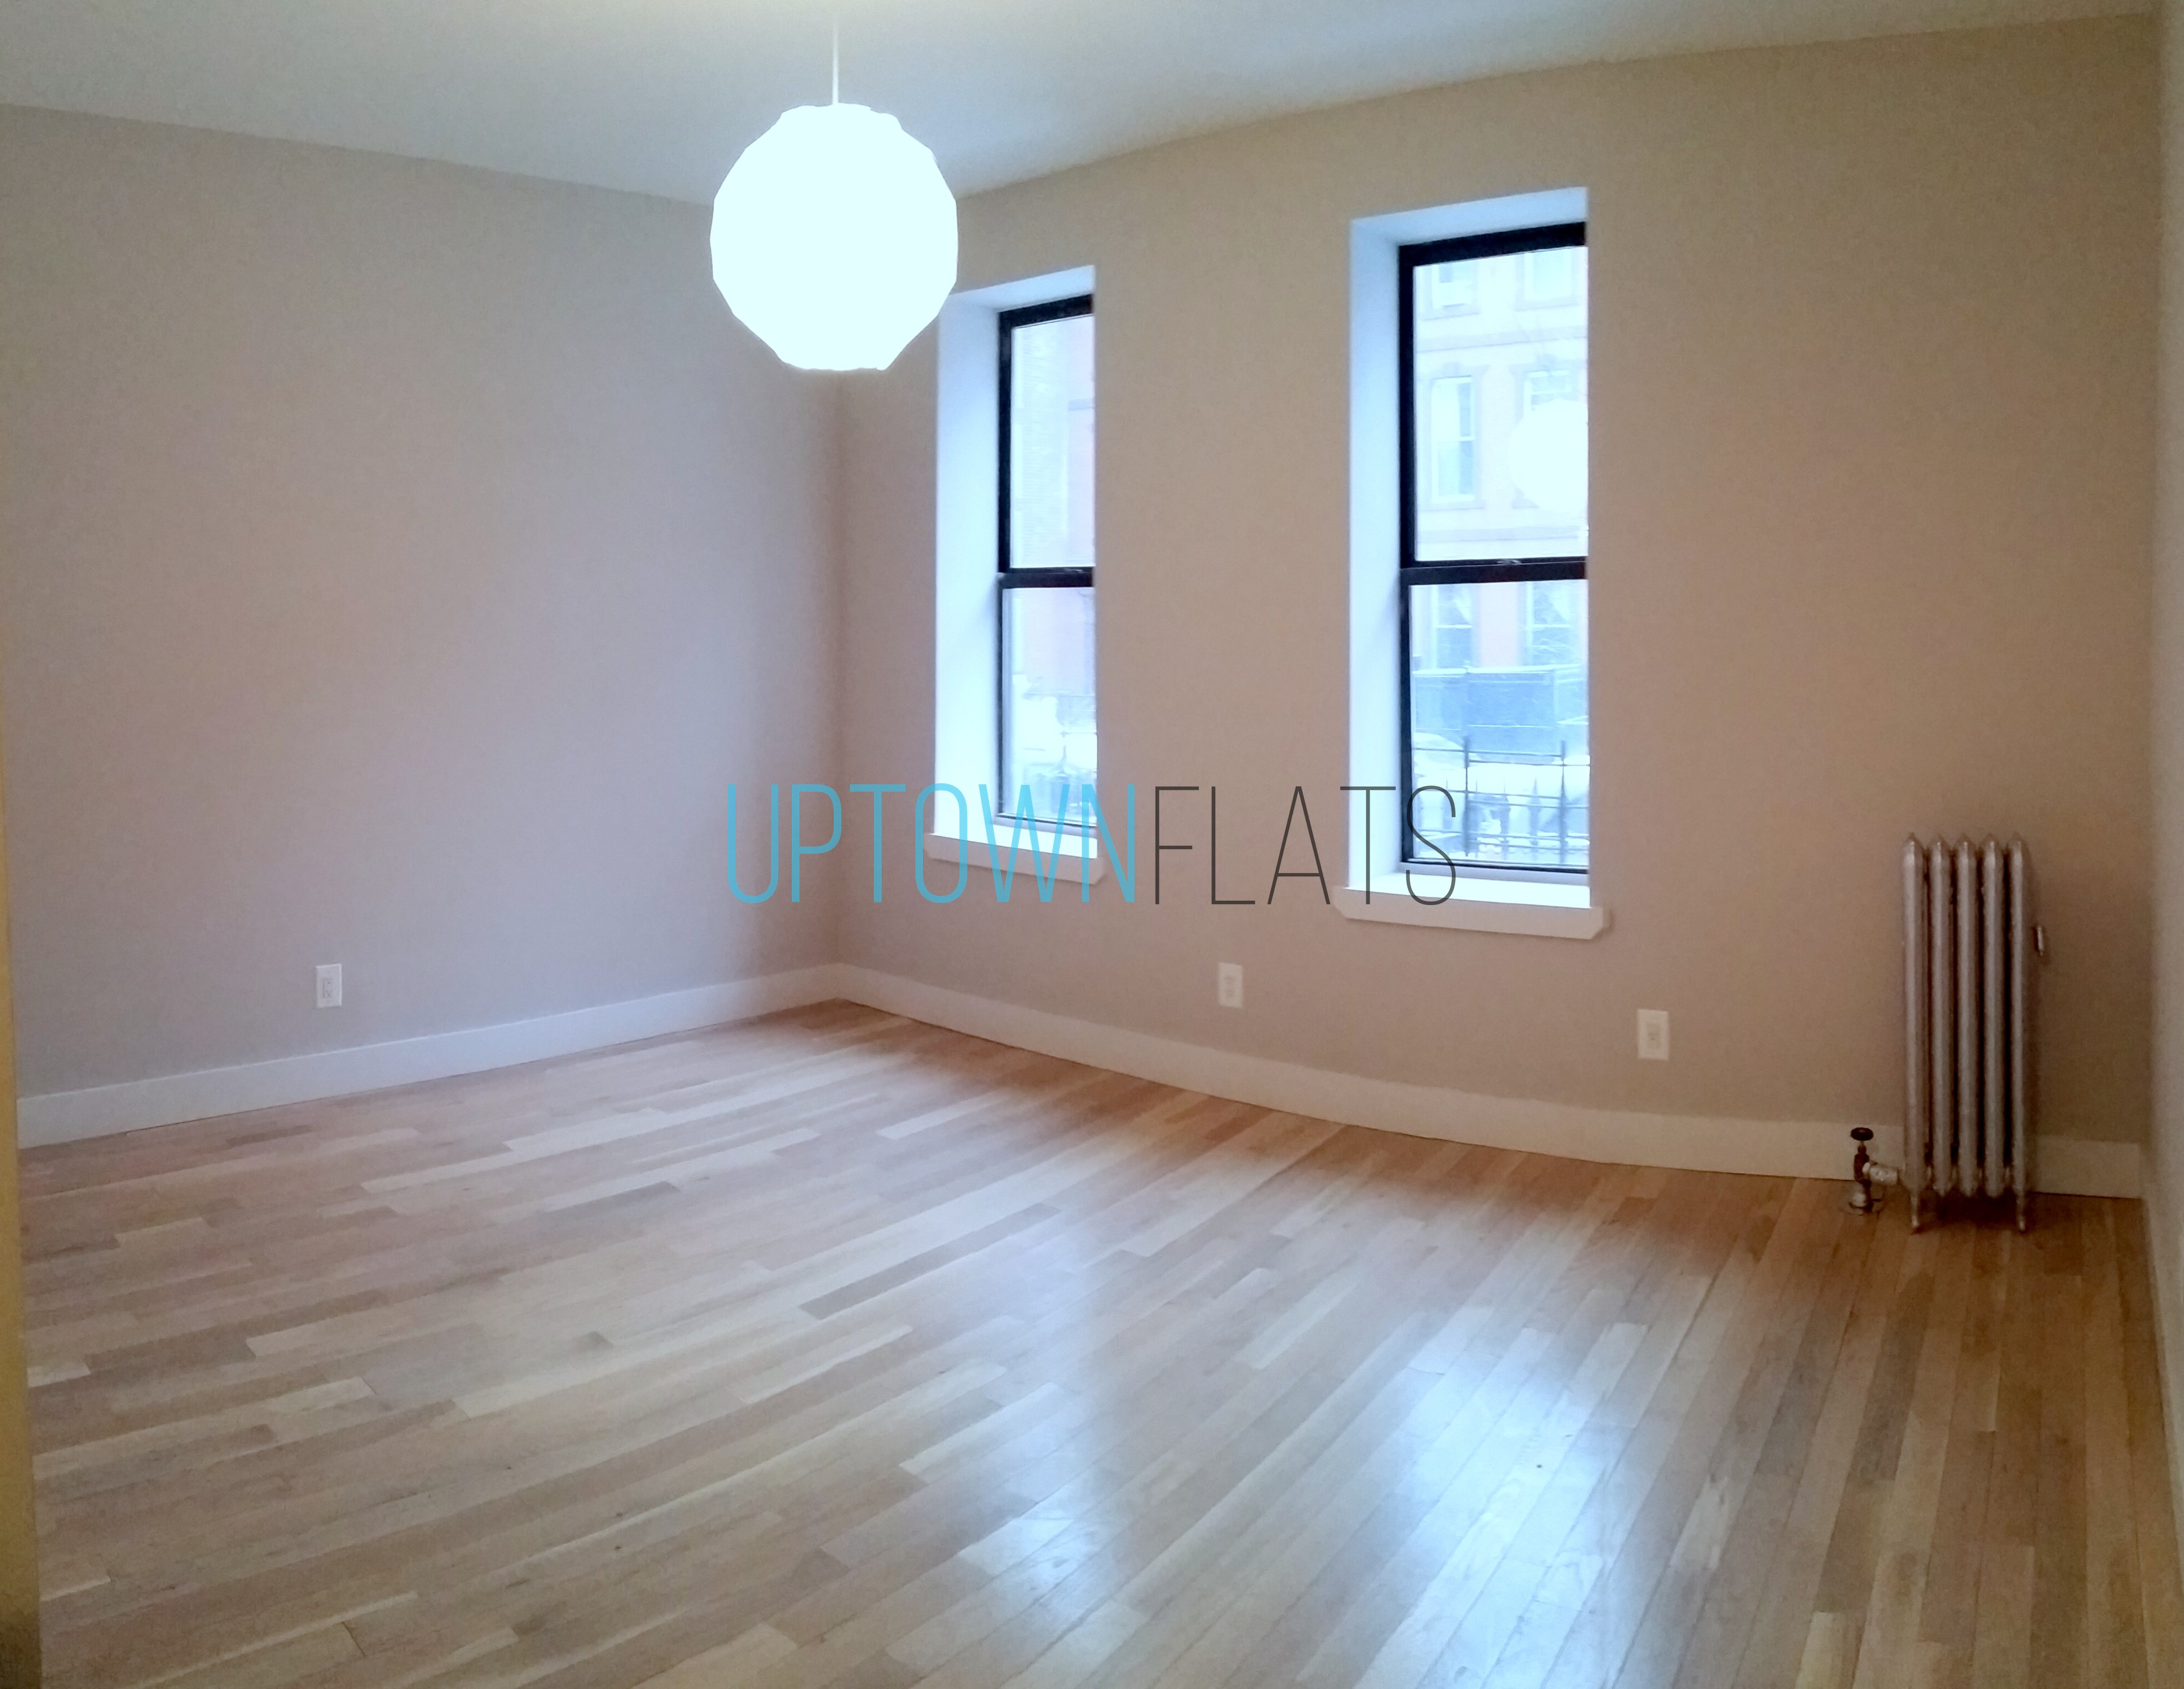 510 west 158th street 3 new york ny 10032 3 bedroom - Three bedroom apartments for rent nyc ...